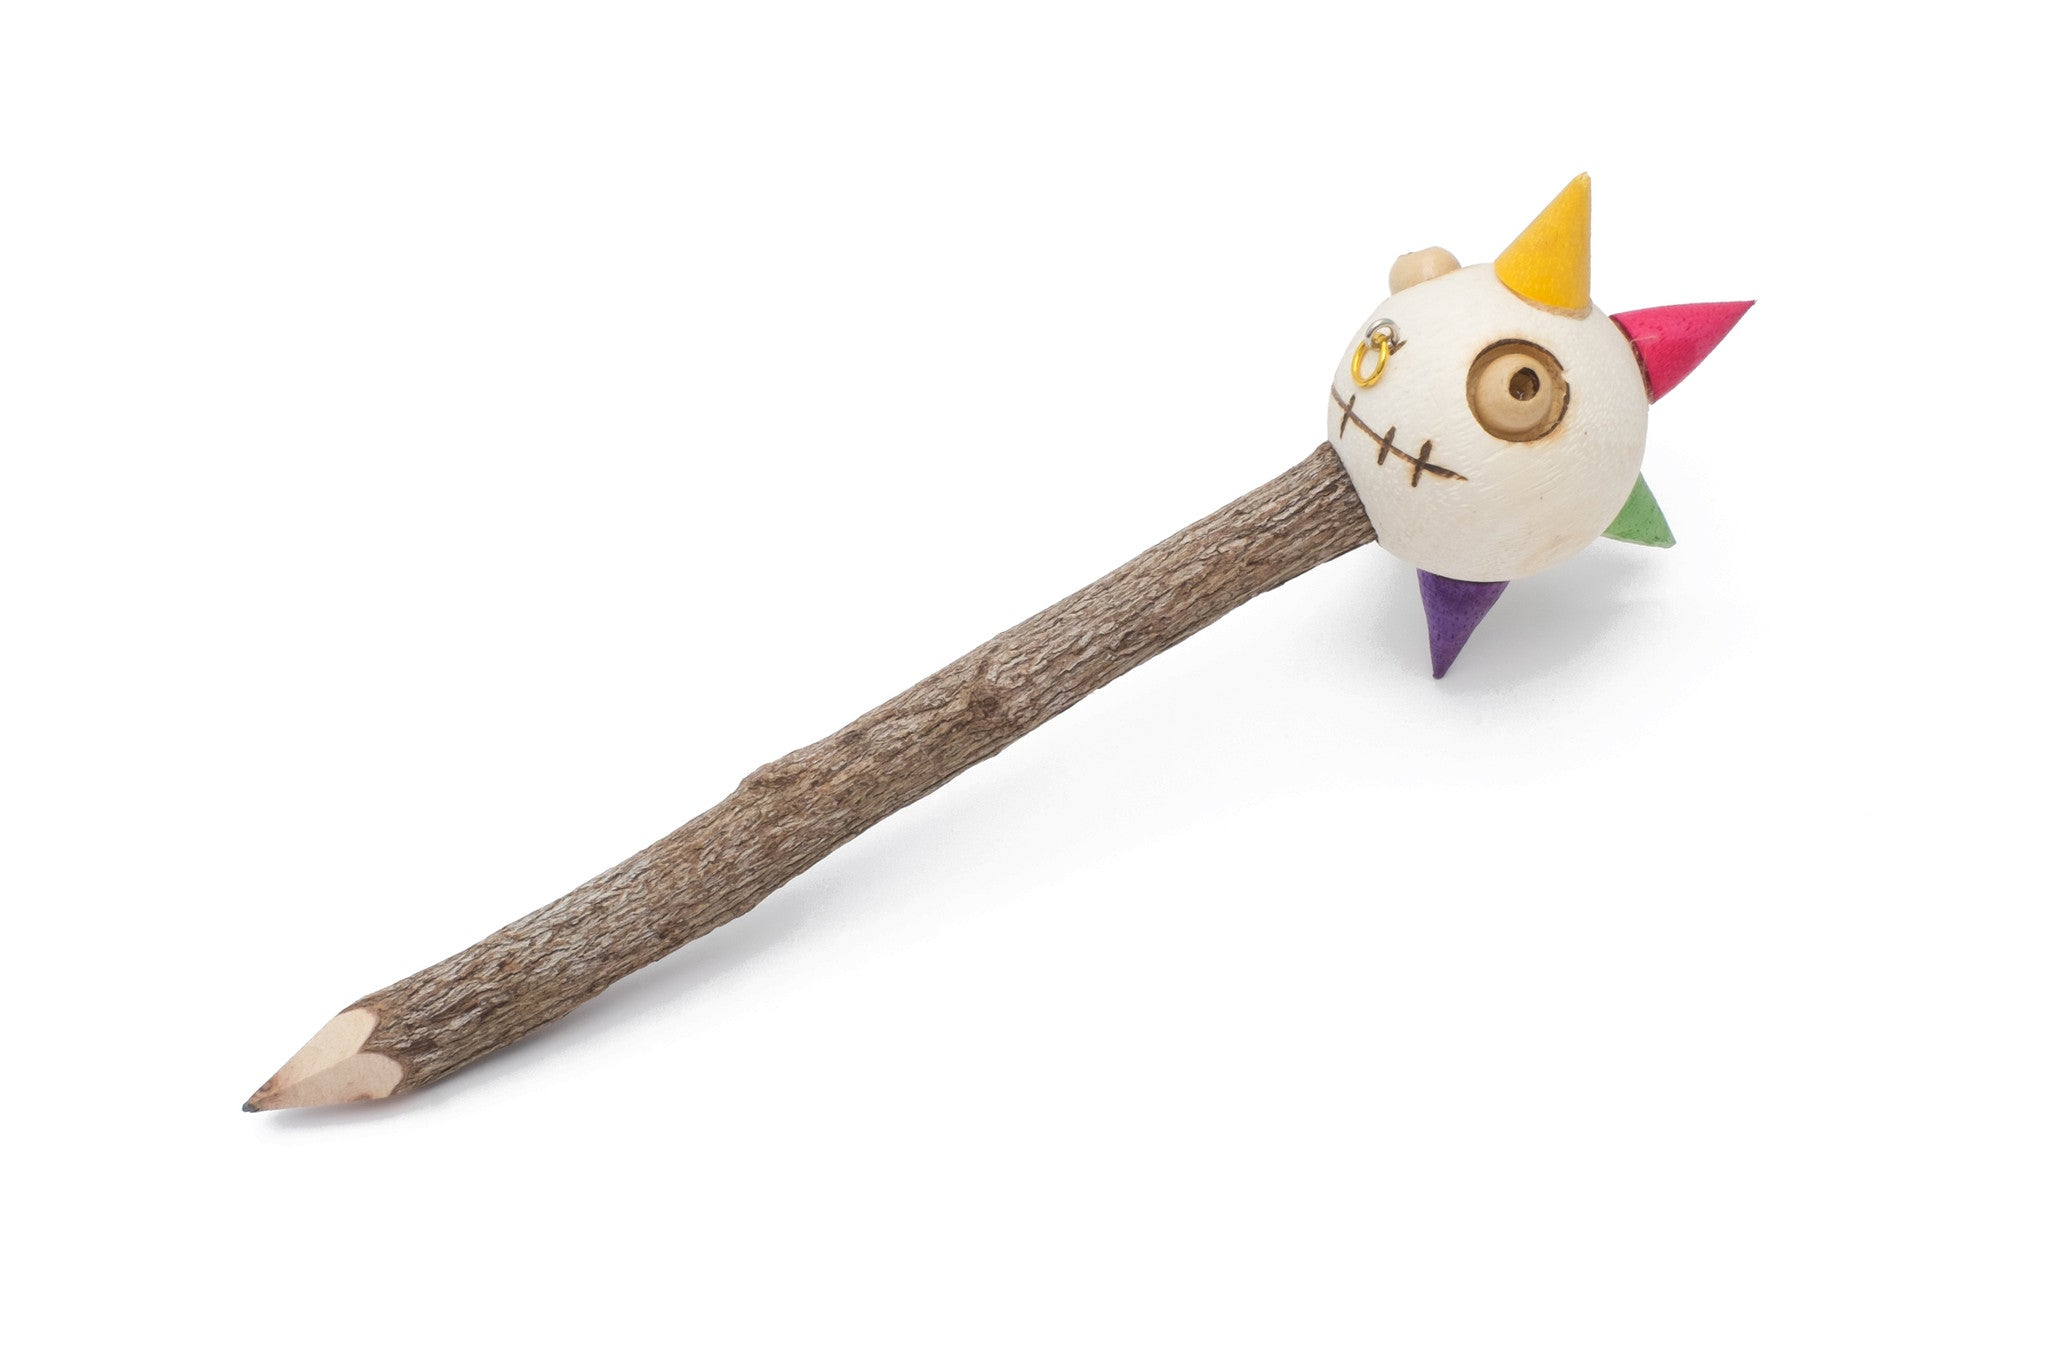 Wooden Pencil with Crazy Doll Head - Funky Punk Man